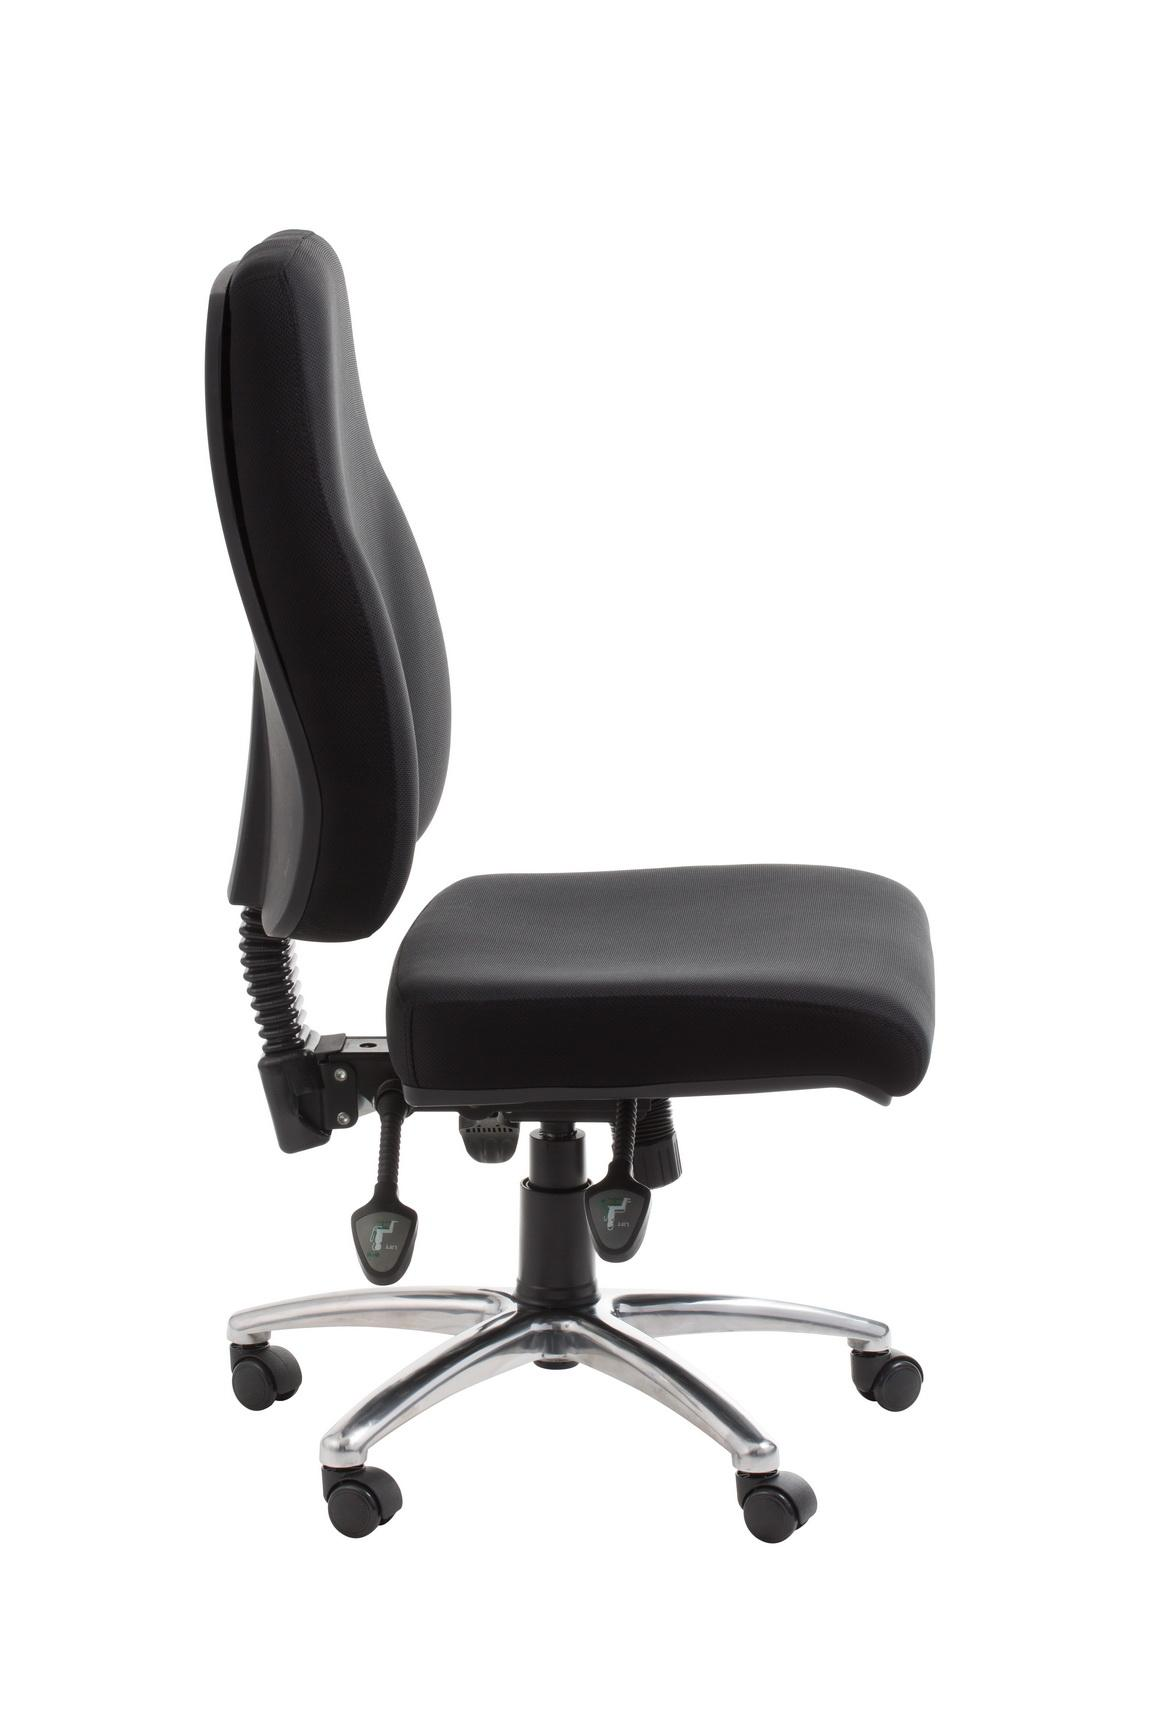 Office Chairs Perth Perth Office Furniture Store Office Furnitures Office